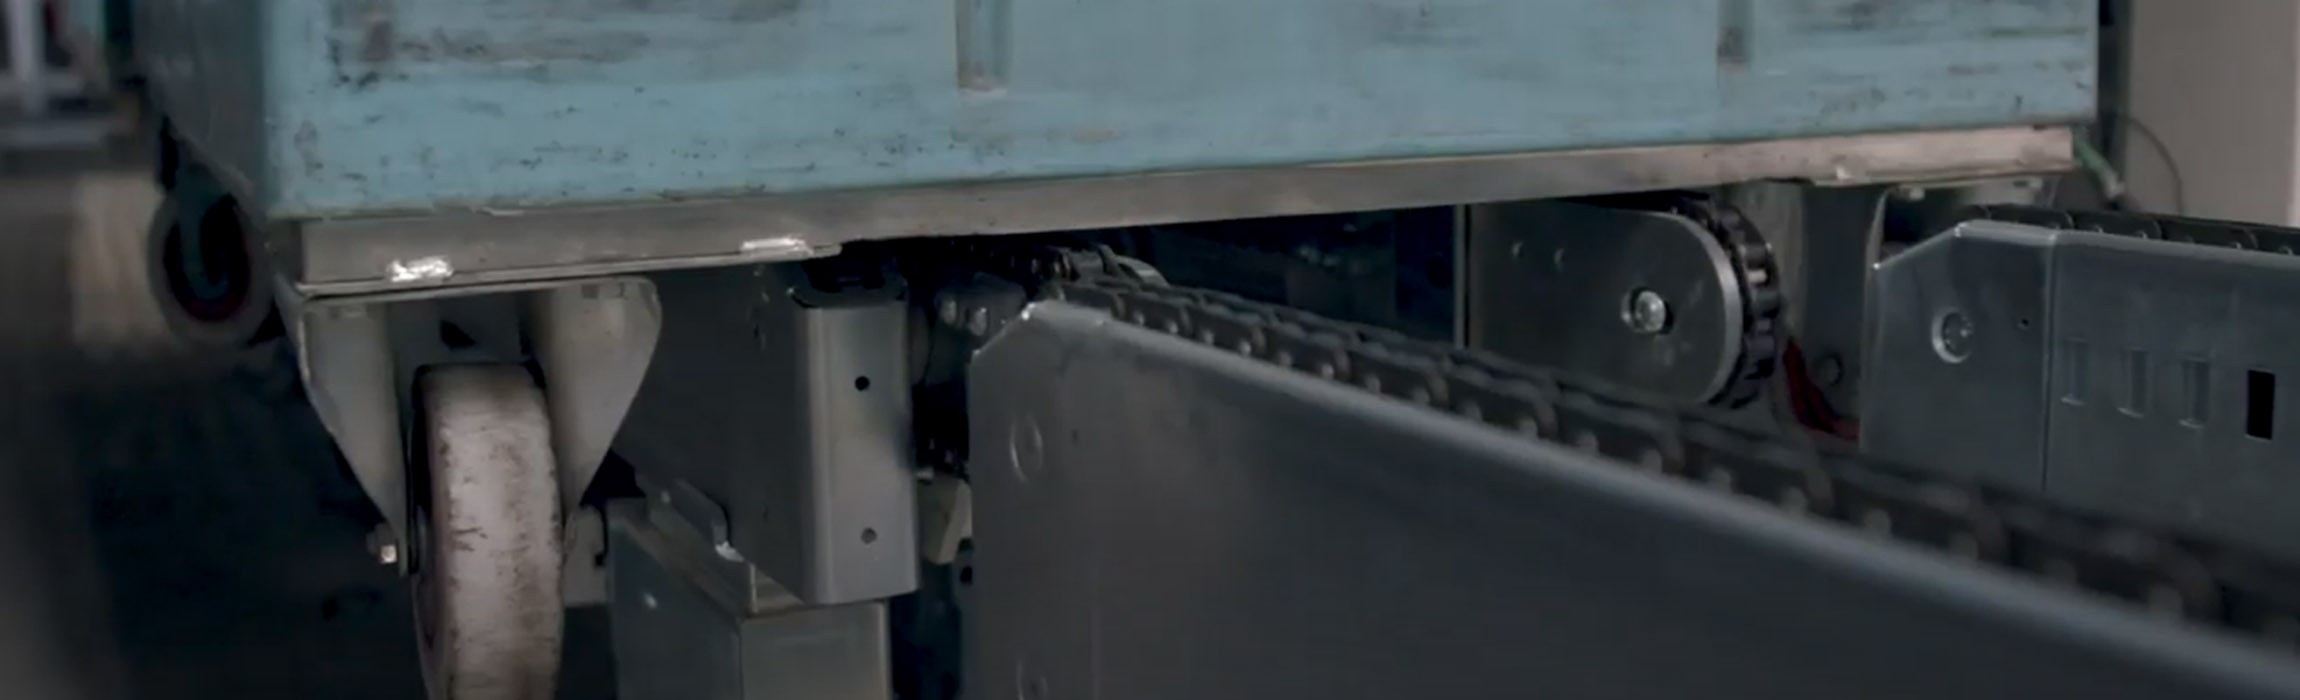 Roll container conveyor technology - high degree of automation and throughput with TGW.